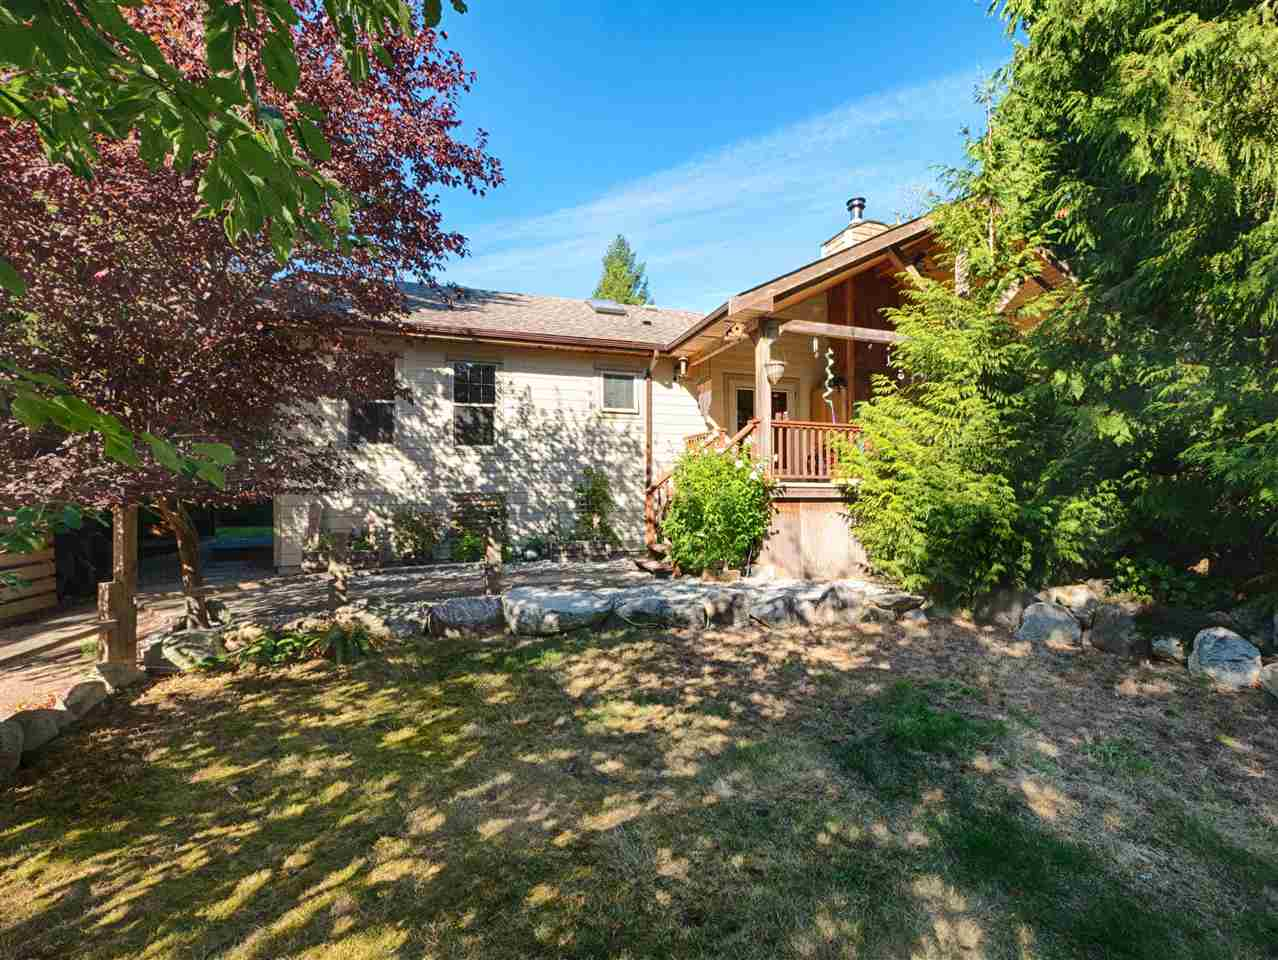 Main Photo: 7952 SOUTHWOOD Road in Halfmoon Bay: Halfmn Bay Secret Cv Redroofs House for sale (Sunshine Coast)  : MLS® # R2205837